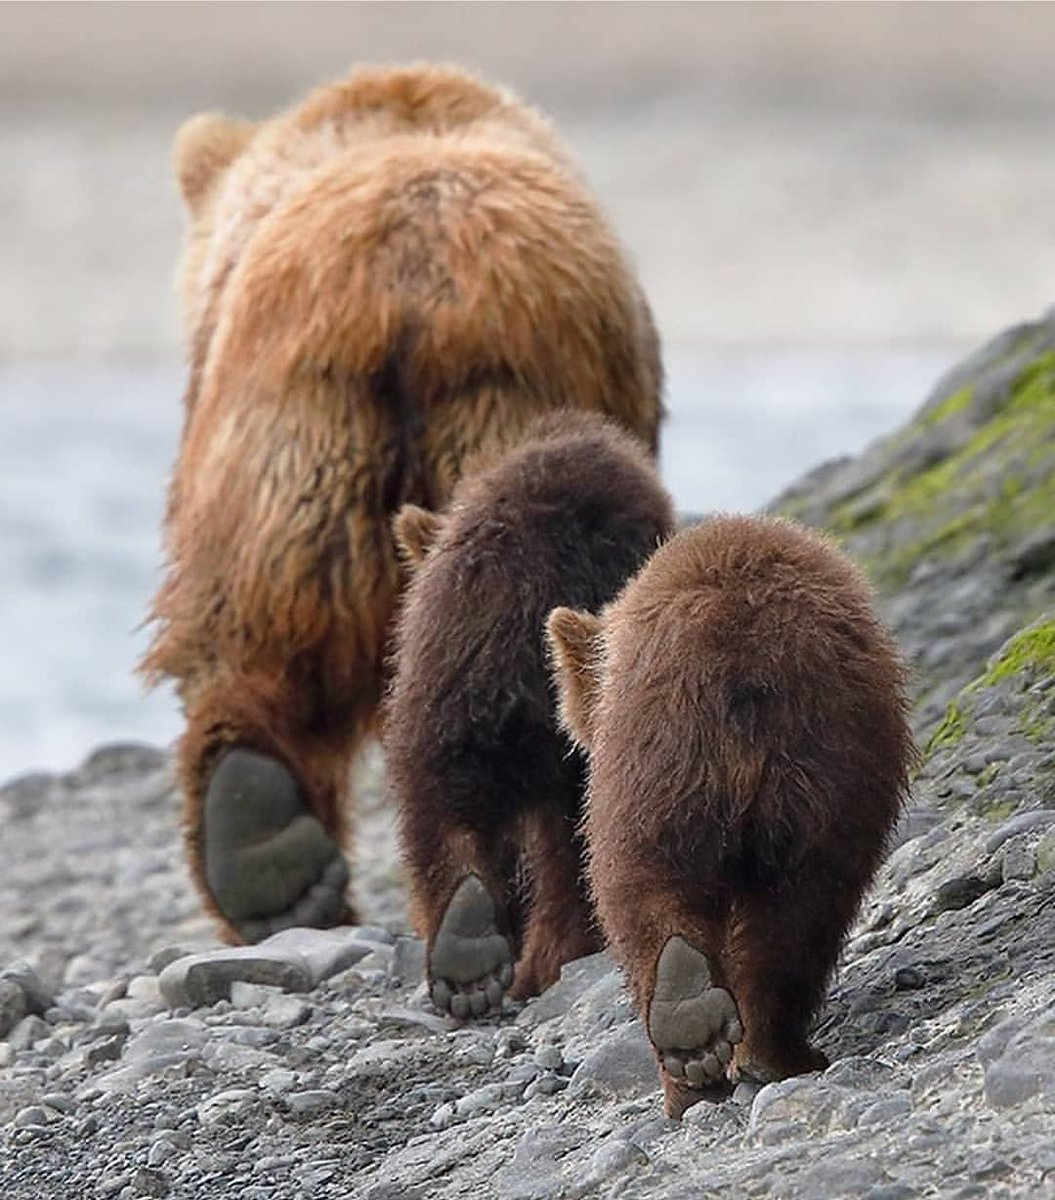 Mother bear and her cubs out for a walk<br>http://pic.twitter.com/fDP81P8WhR